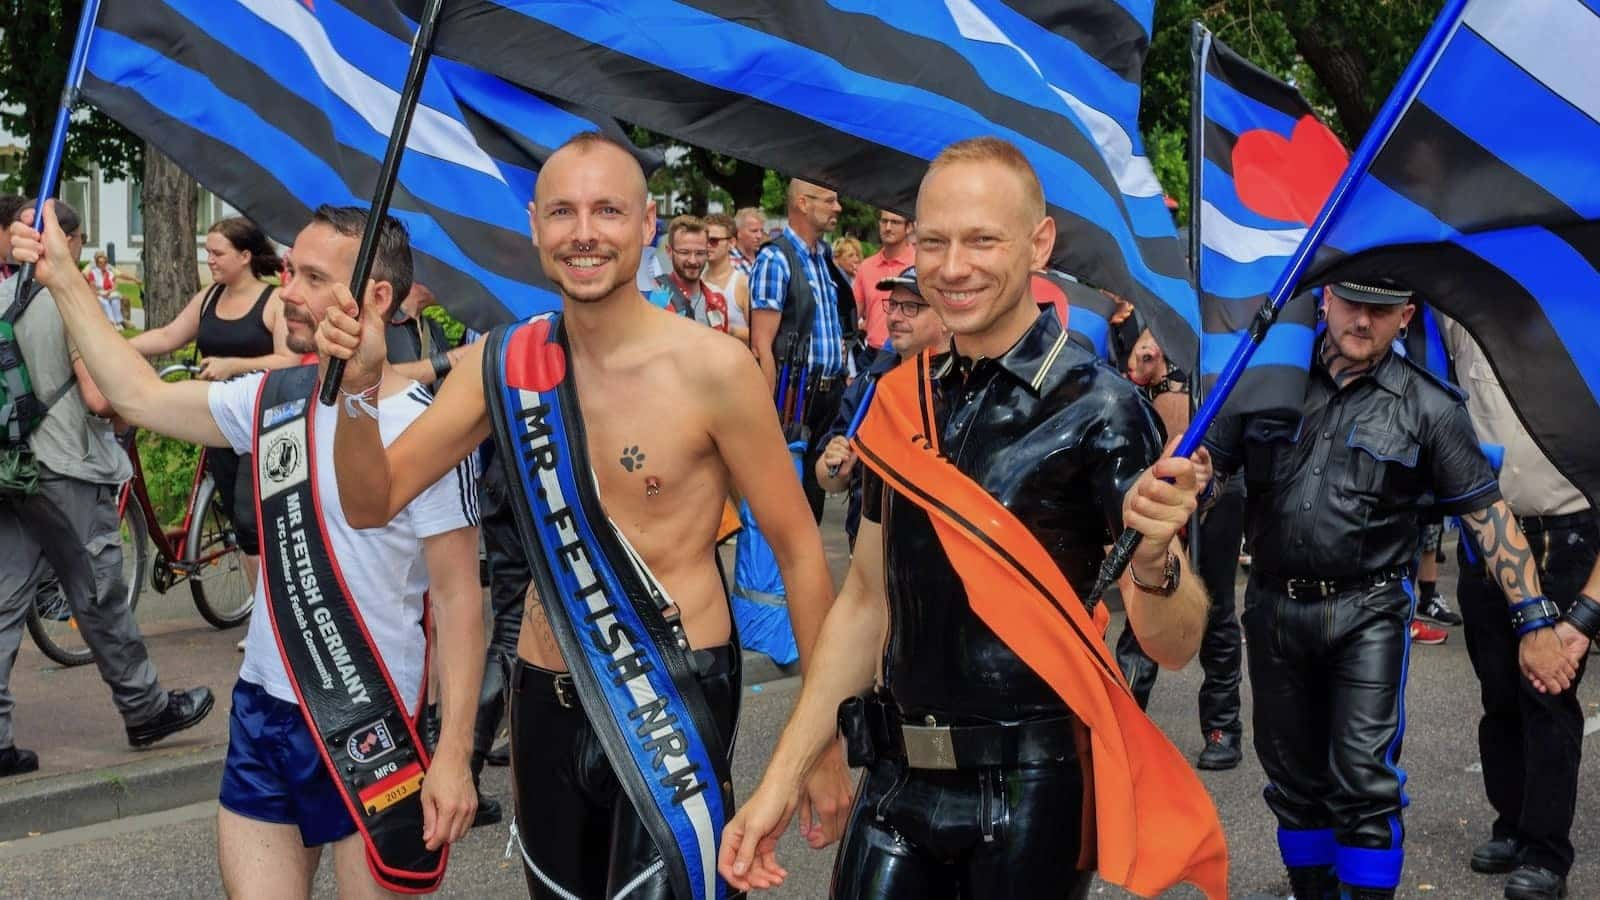 Cologne Pride one of the best Pride events in the world